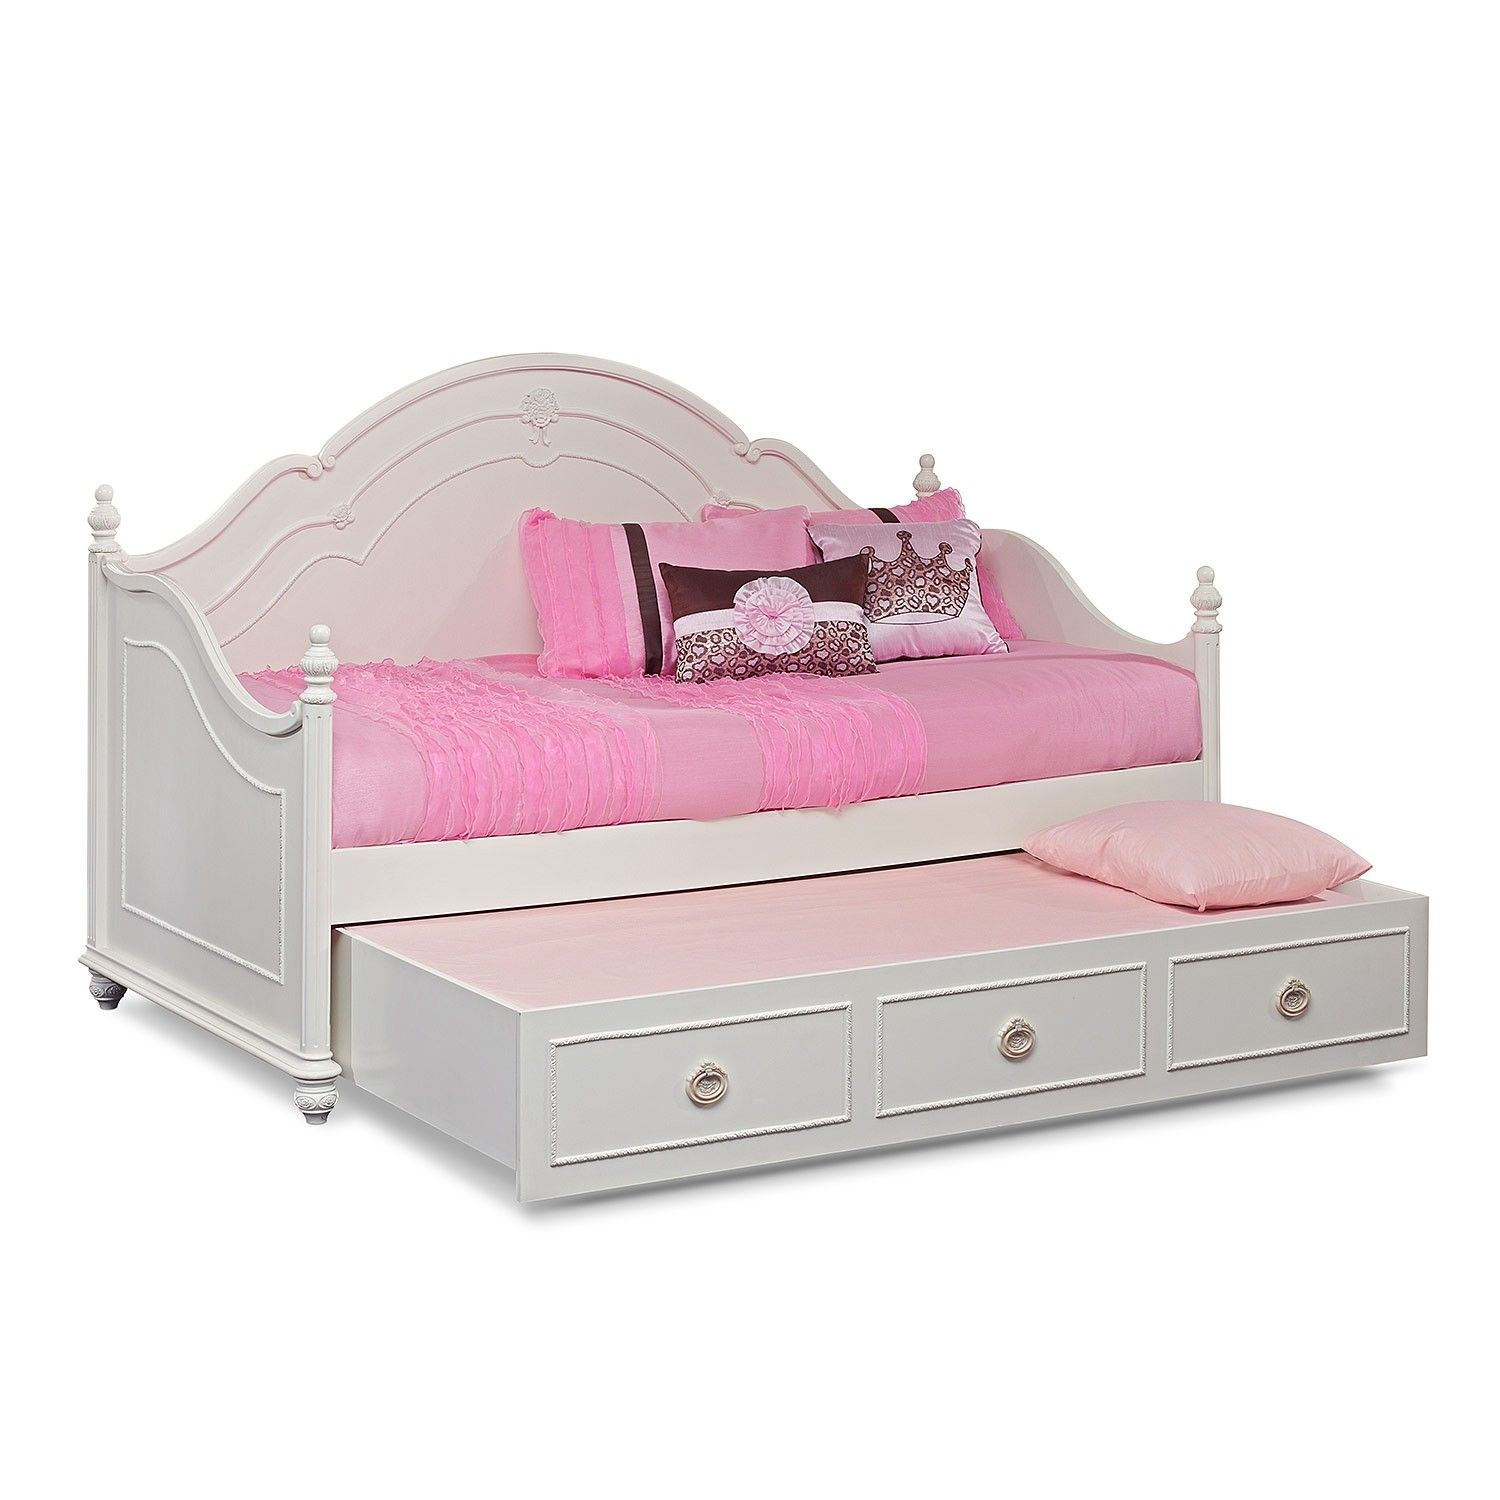 Bedroom Curved White Wooden Daybed And Sliding Bed Having Pink